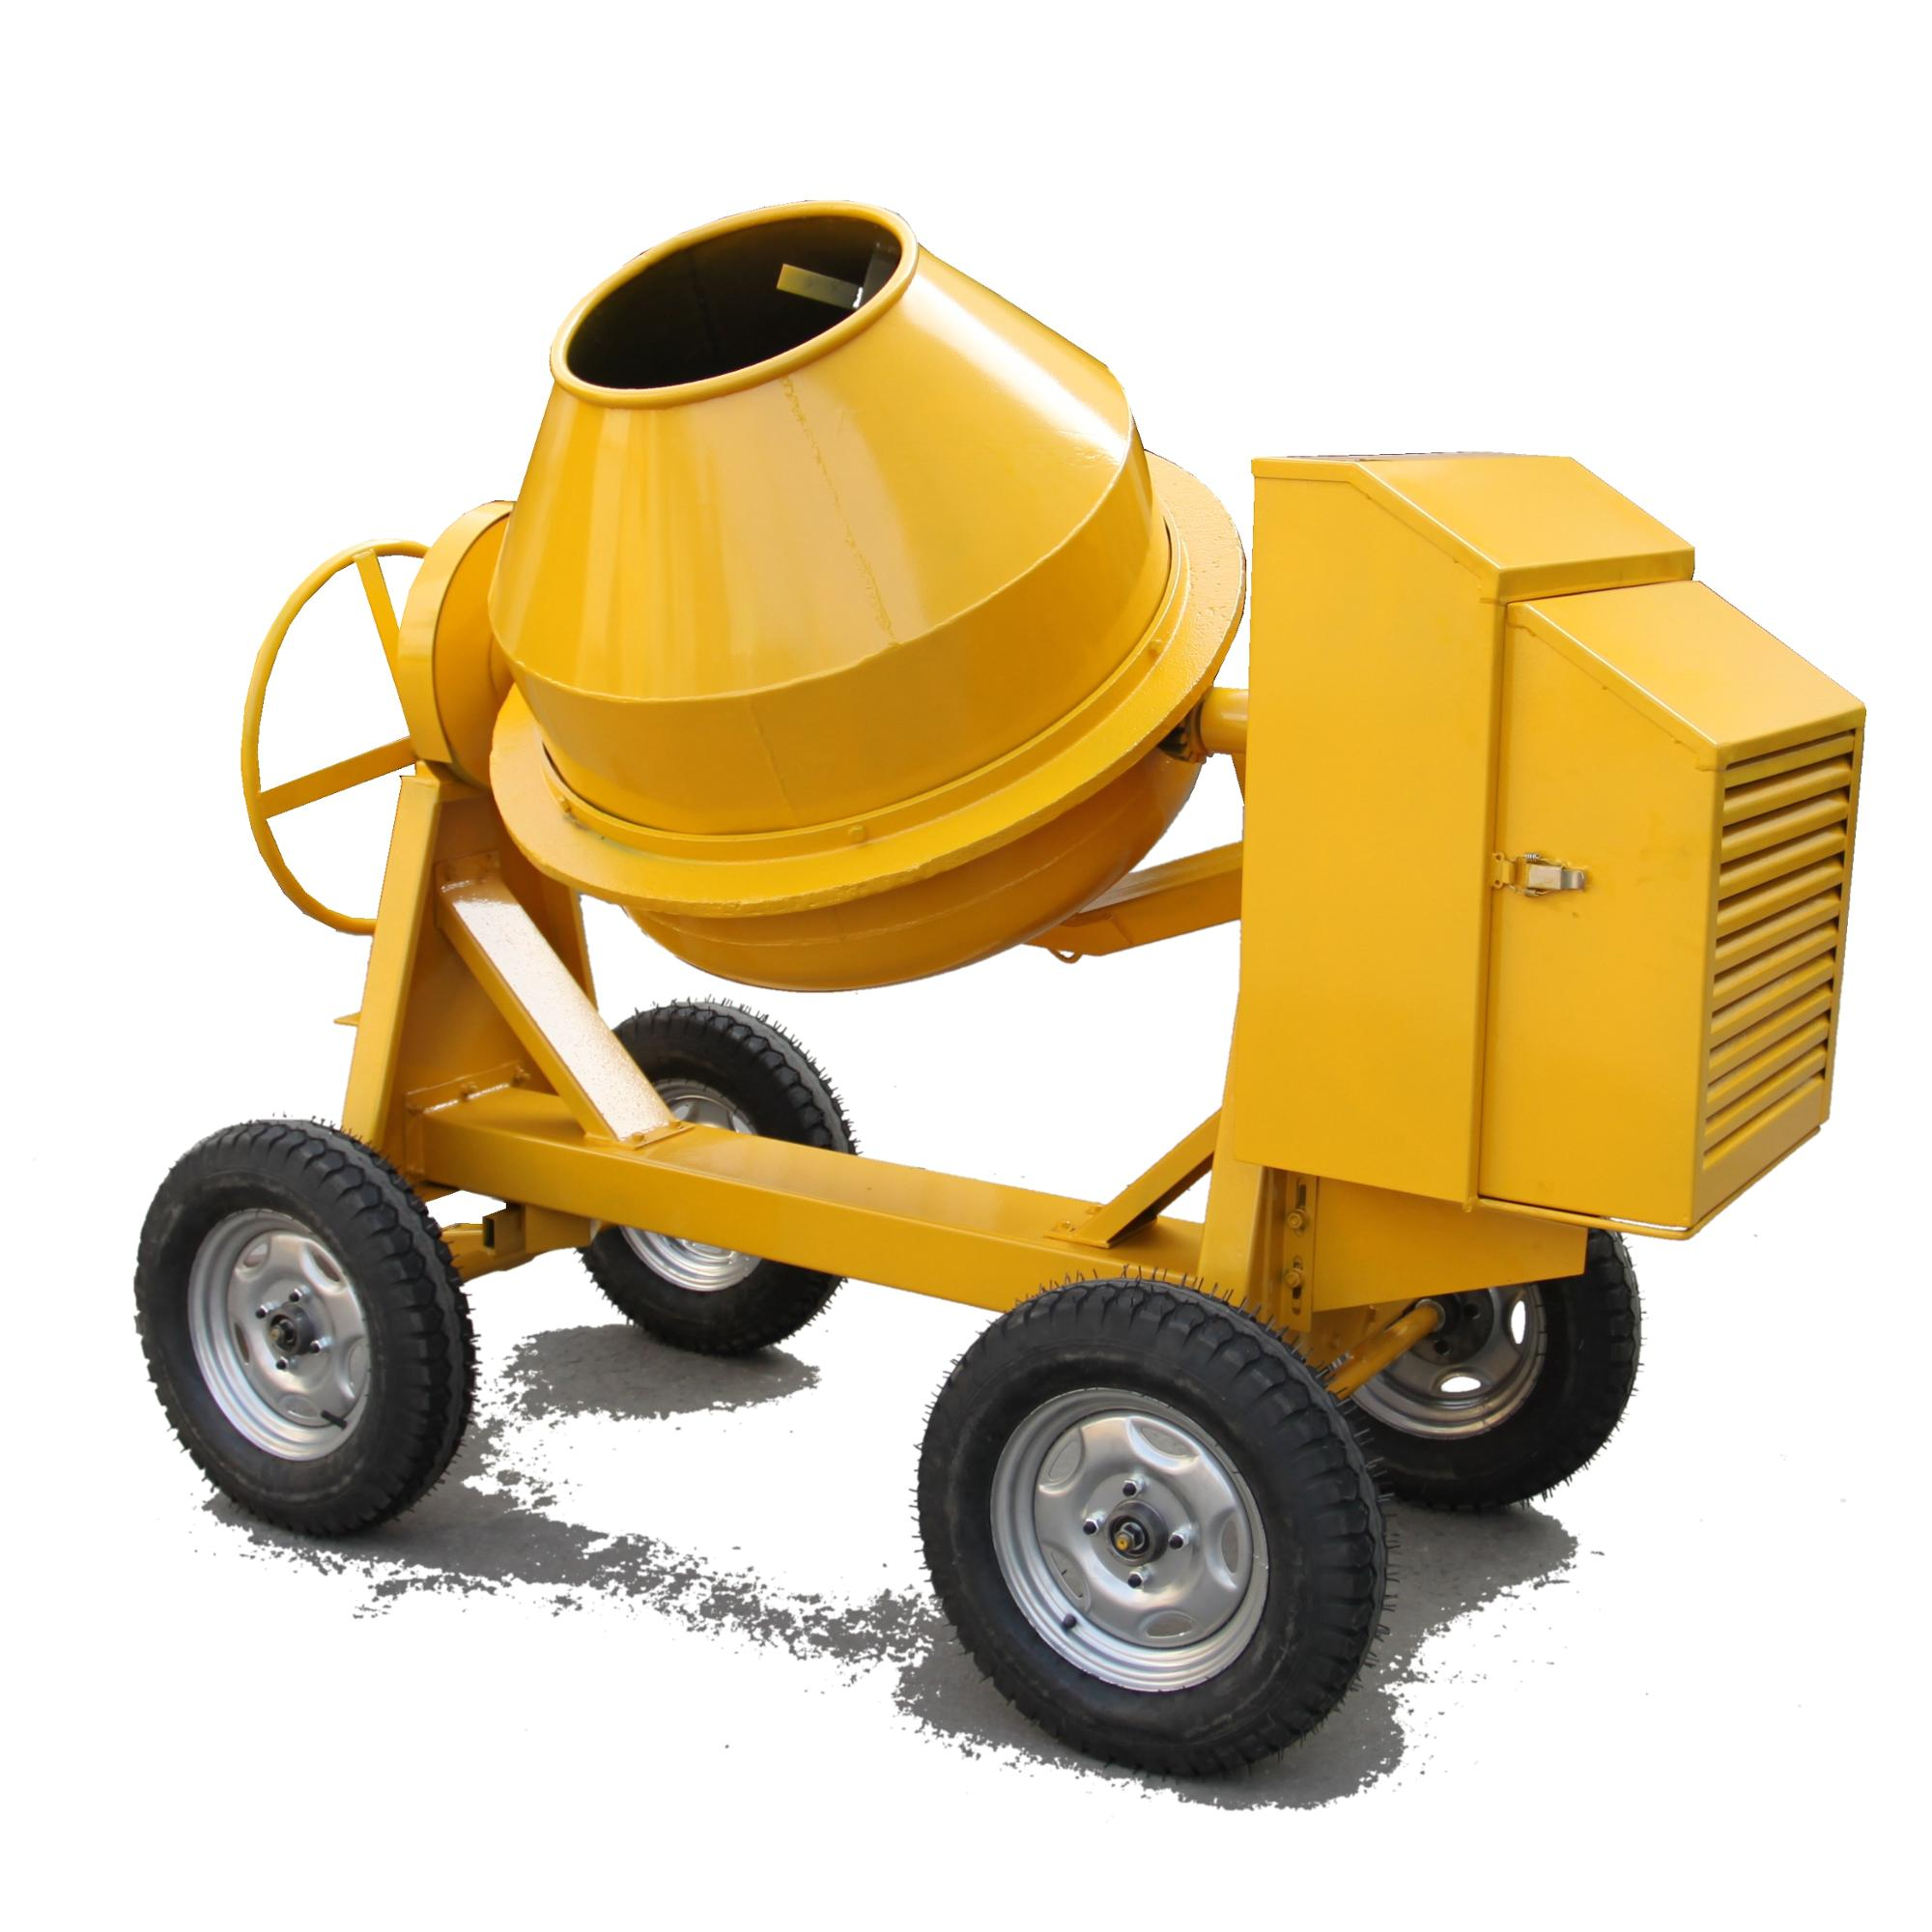 HOT! 350L 400L 500L Diesel/Gasoline/Motor engine volumetric mobile concrete mixer machine with good price for sale